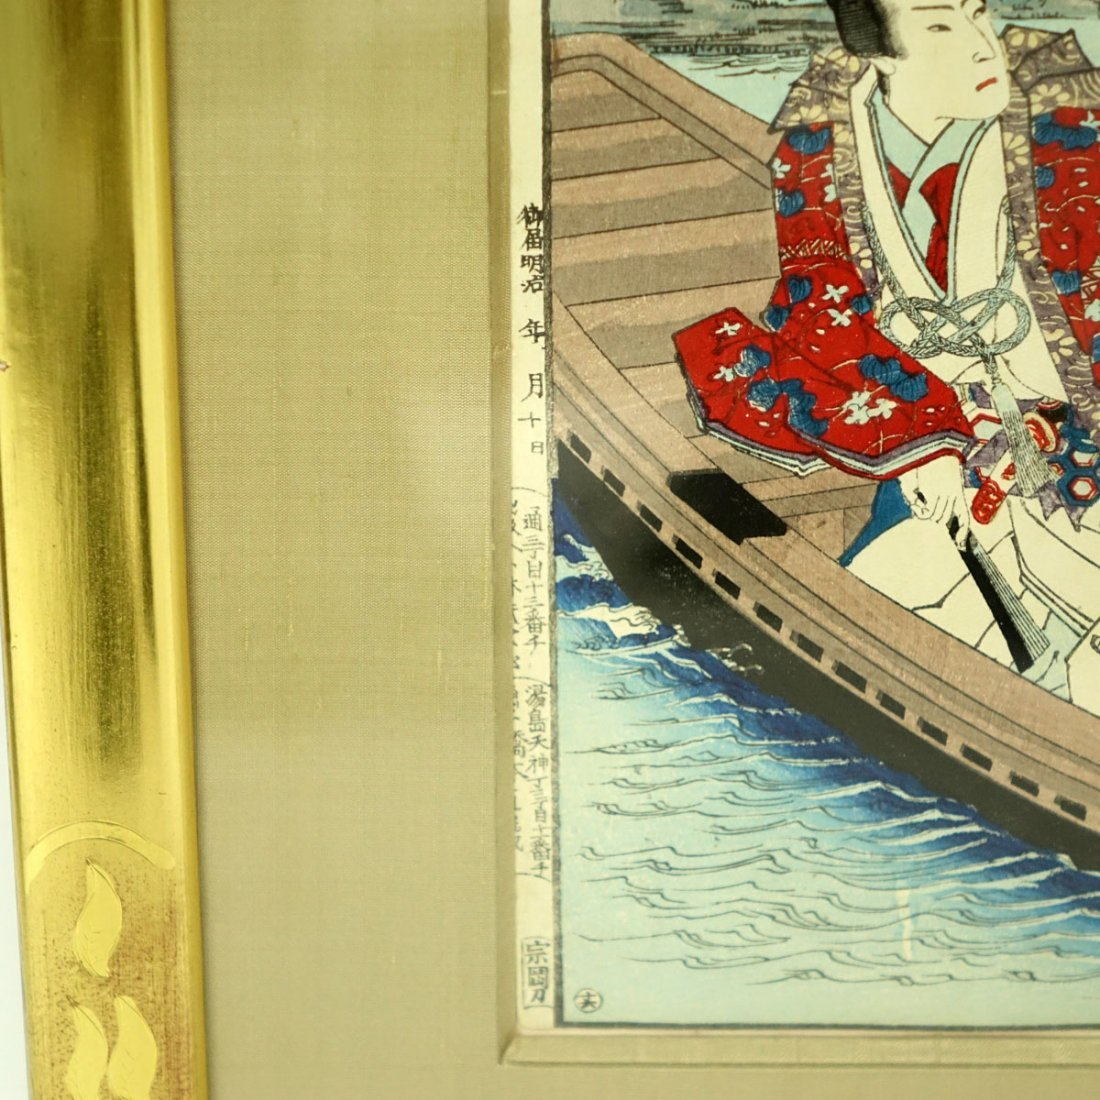 Japanese Woodblock Prints - 5